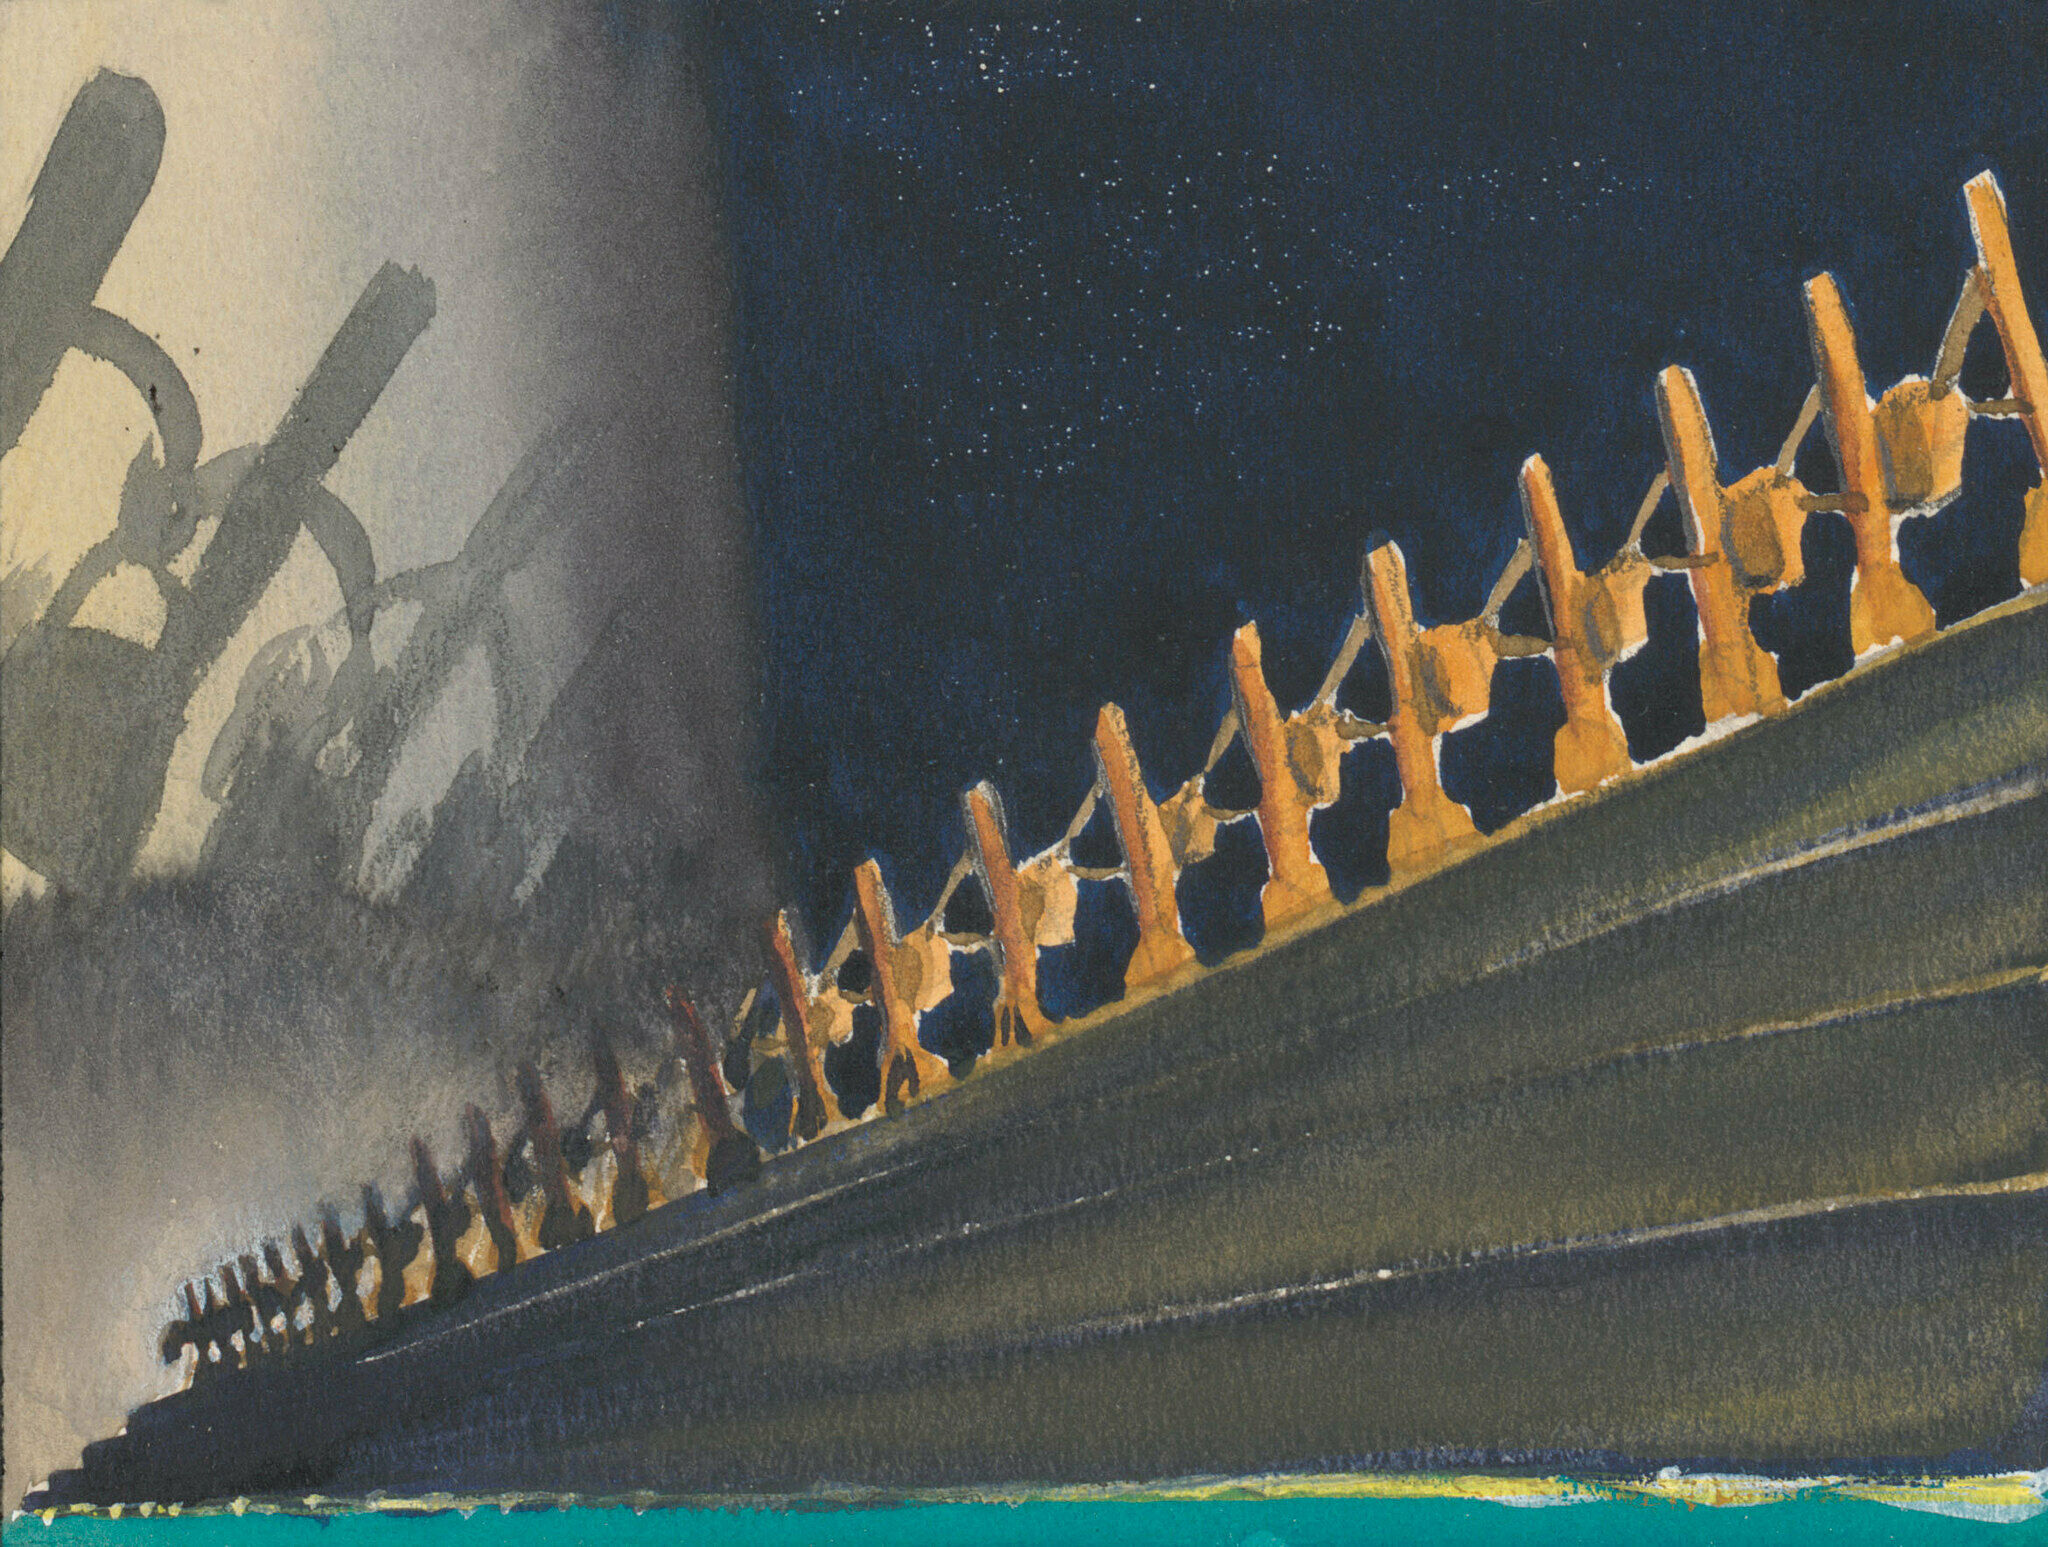 A watercolor sketch from the film Fantasia. Brooms carry buckets of water across the frame